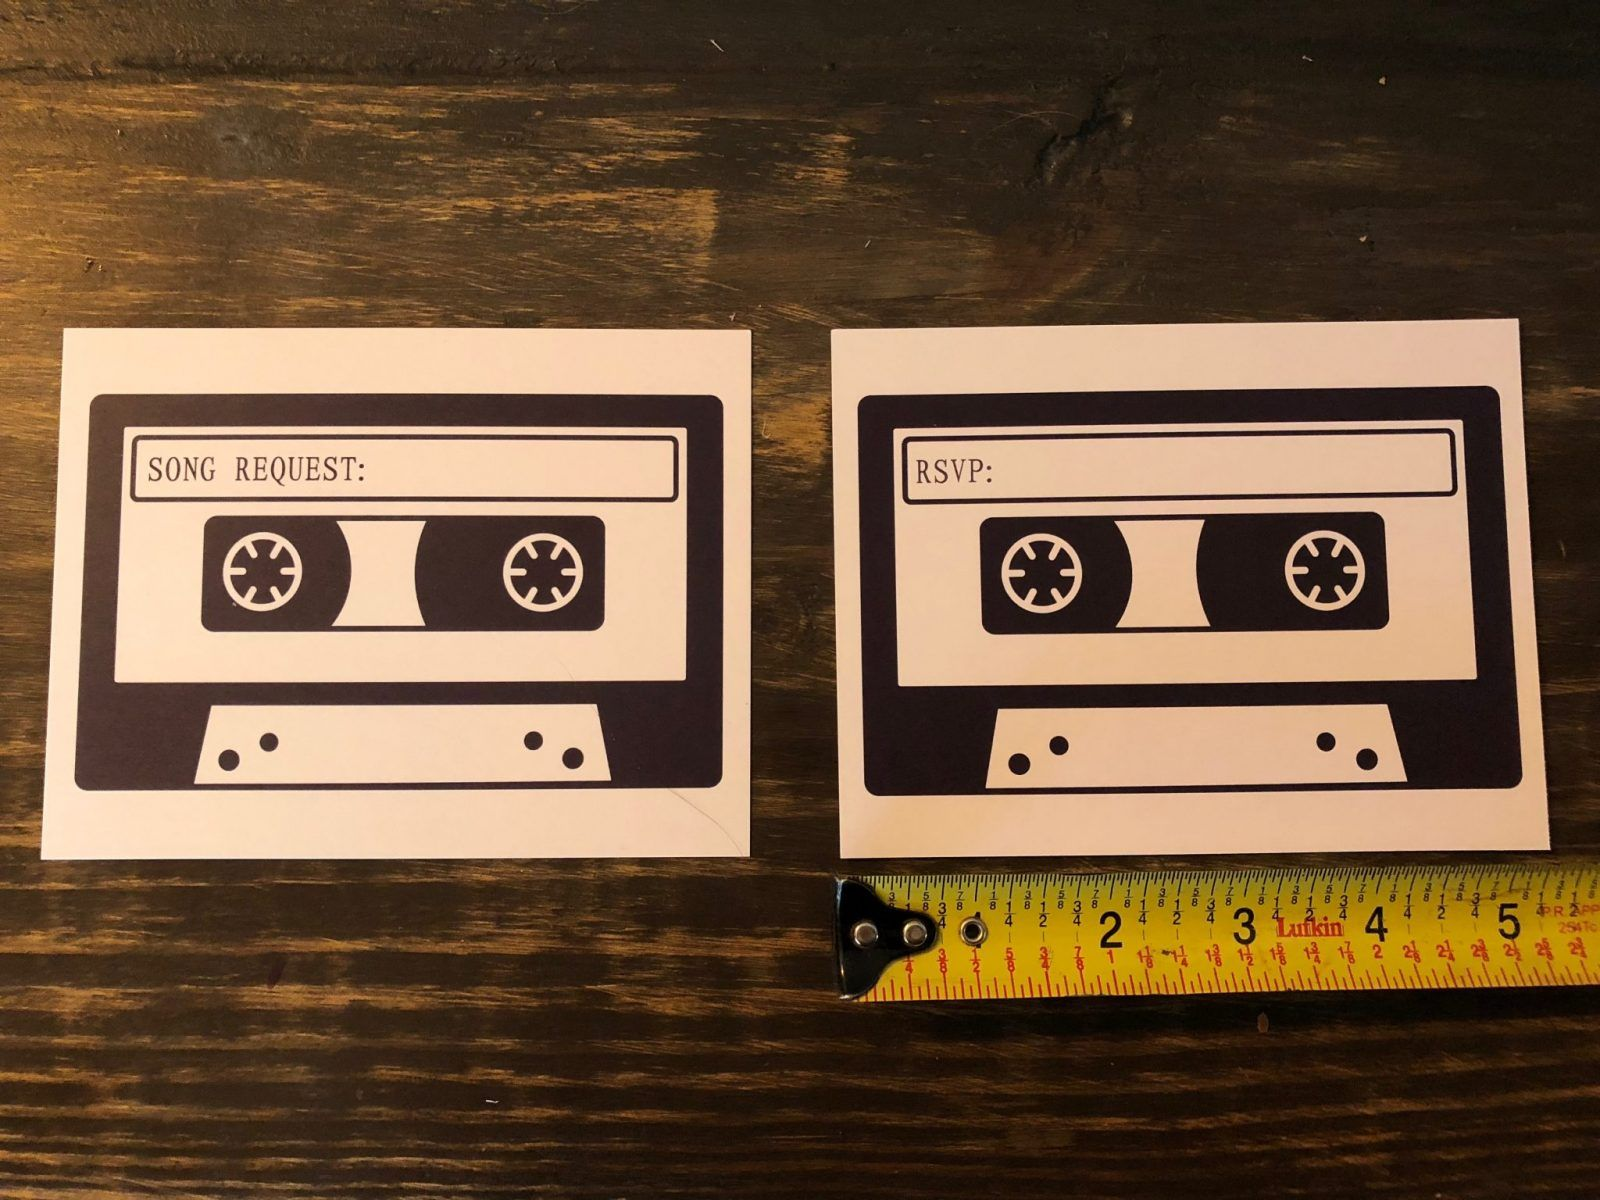 Rsvp Cards With Song Request Cassette Tape Mixed Tape Wedding Recycle In 2020 Song Request Rsvp Card Cassette Tapes